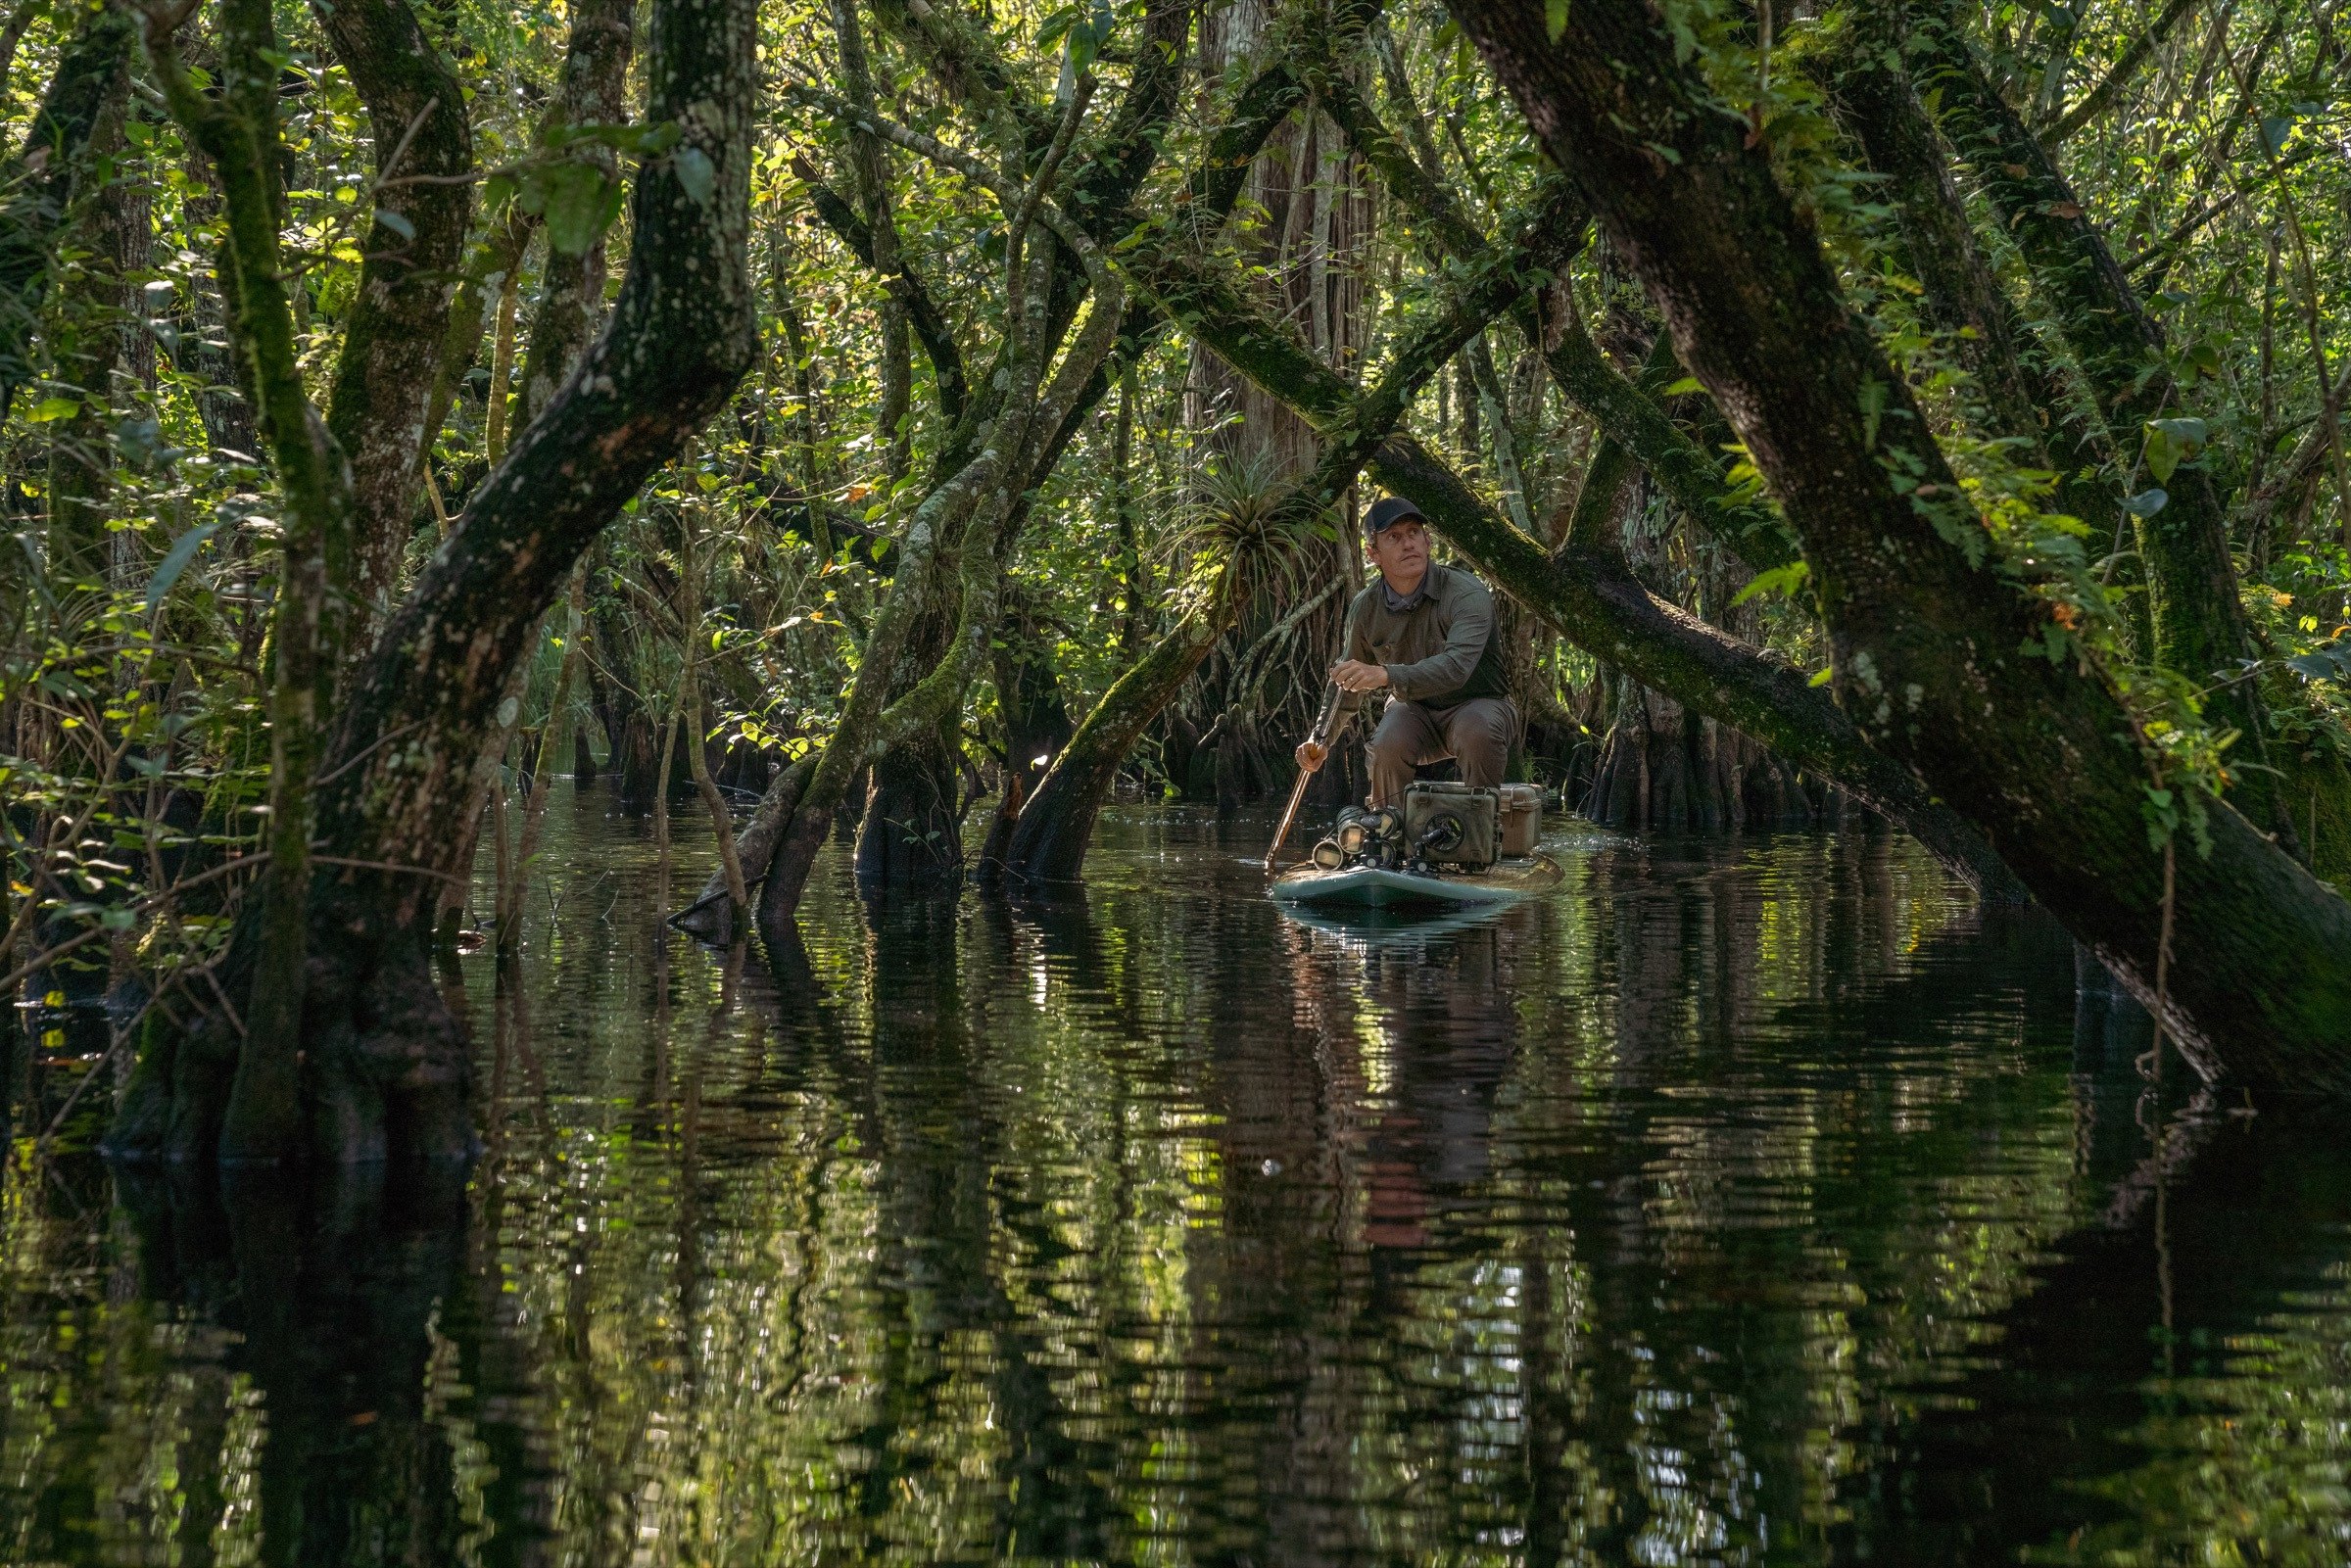 Carlton Ward Jr. paddles into a remote corner of the Fakahatchee Strand to set up a camera-trap system. Self-portrait by Carlton Ward Jr.